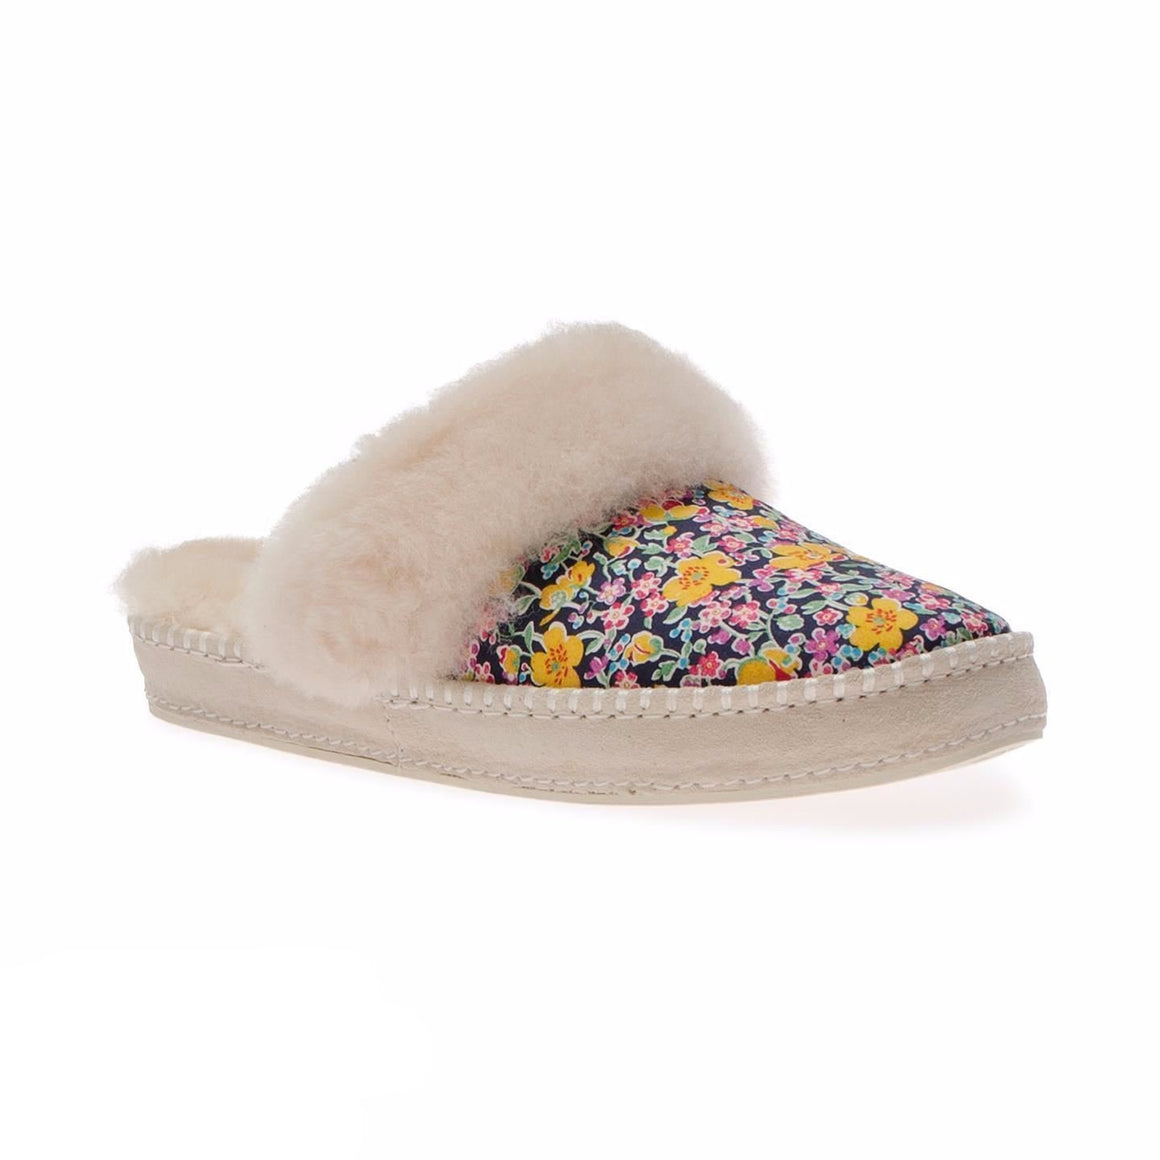 UGG Scuffette Liberty White Slippers